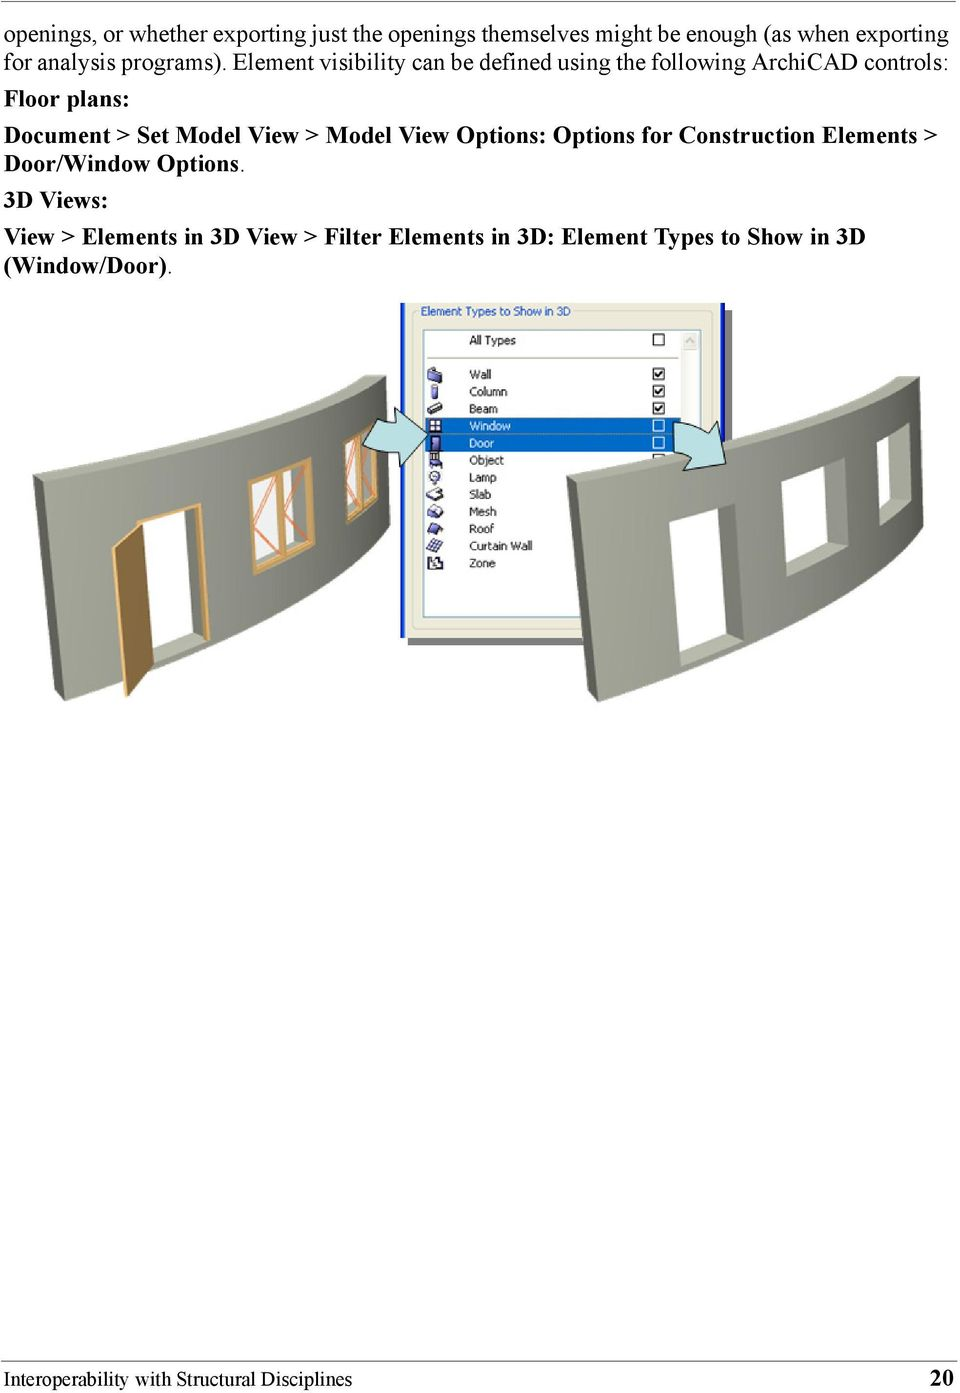 Element visibility can be defined using the following ArchiCAD controls: Floor plans: Document > Set Model View >